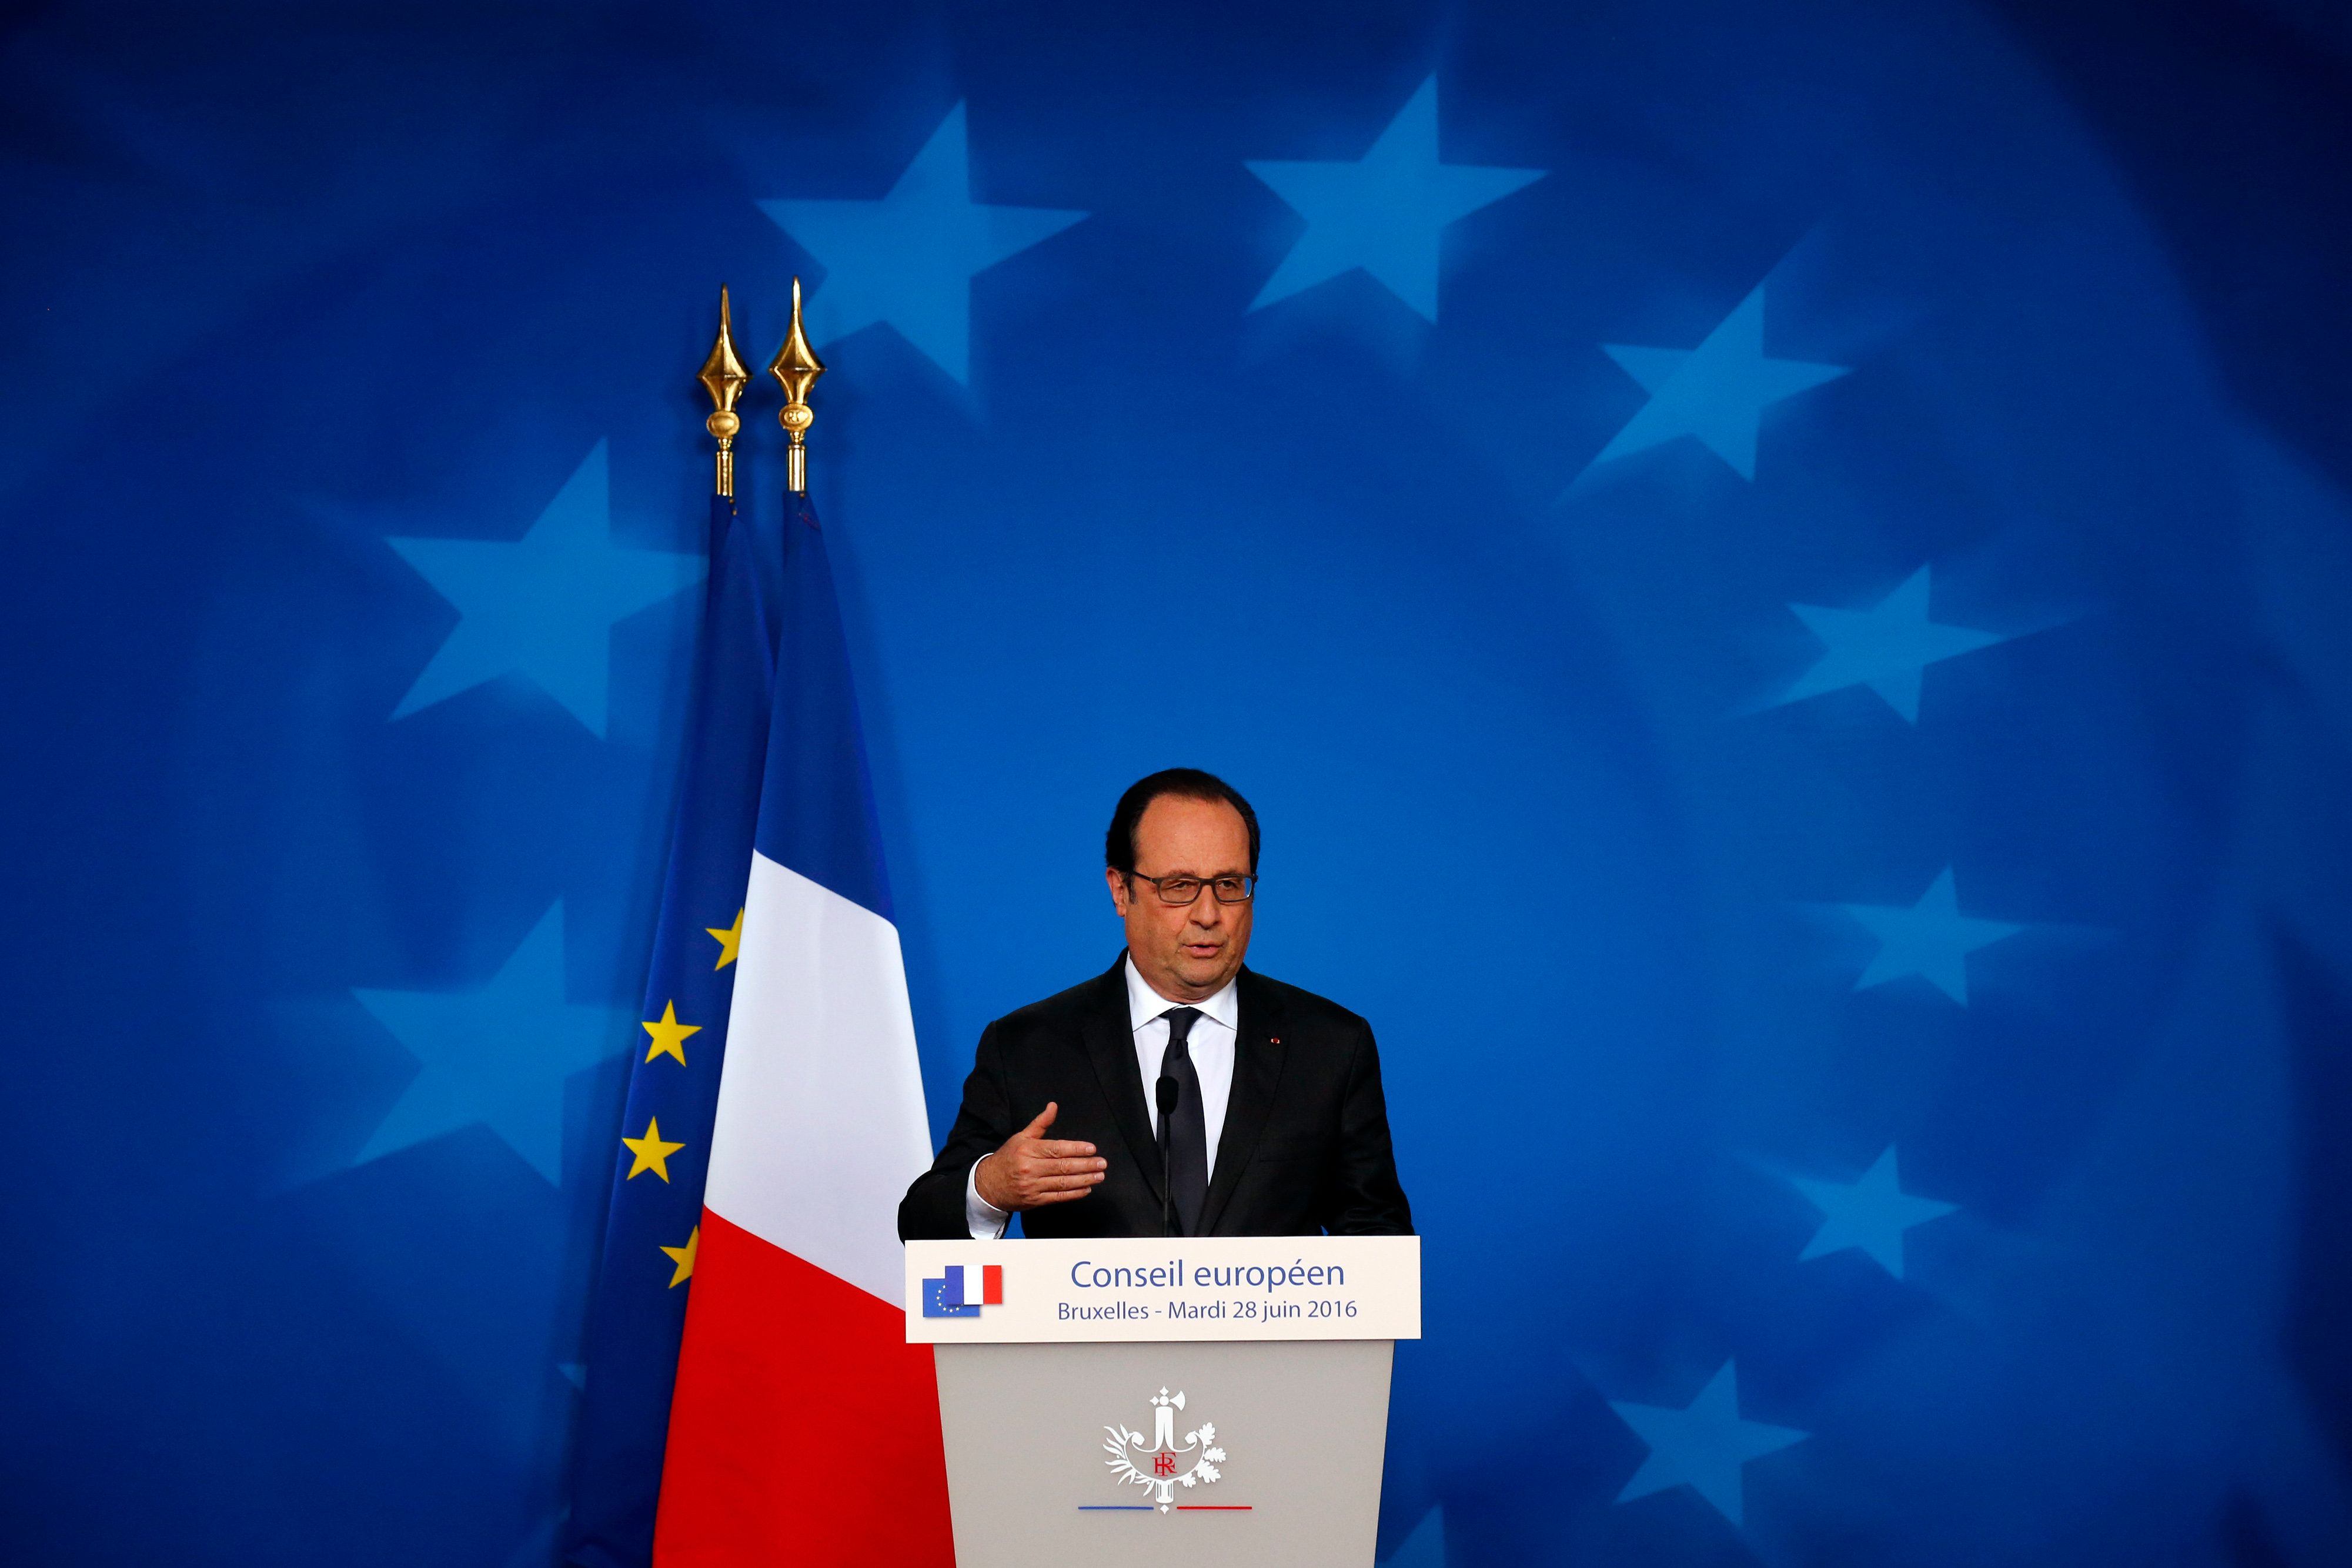 French President Francois Hollande saidnext year's presidential election will be the opportunity...